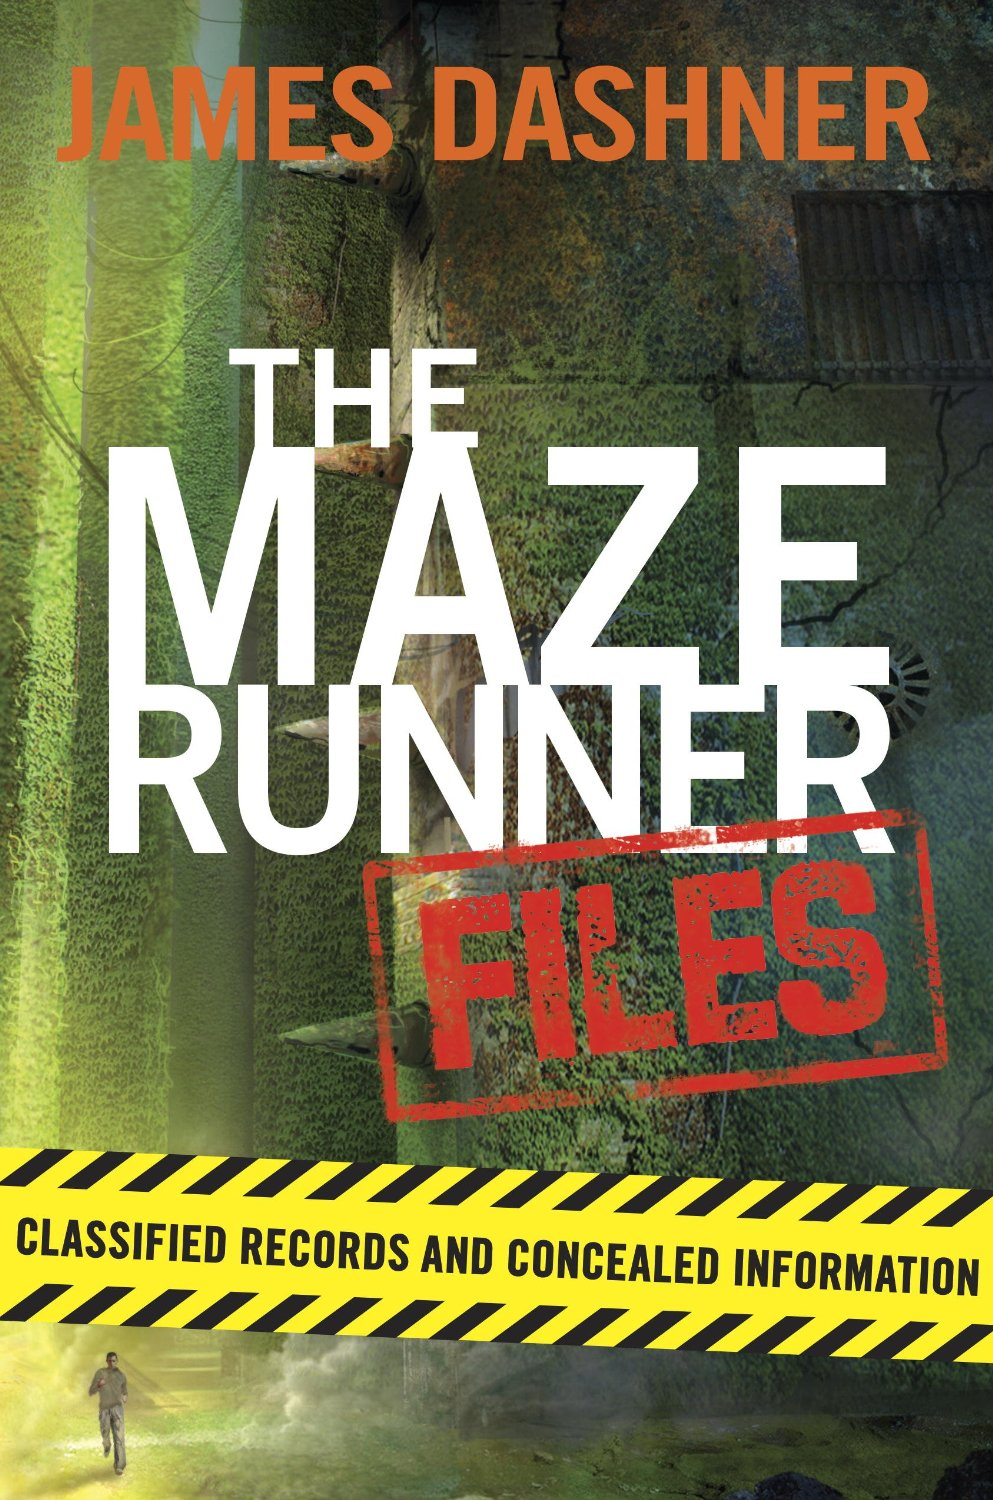 Trilogy runner the epub maze